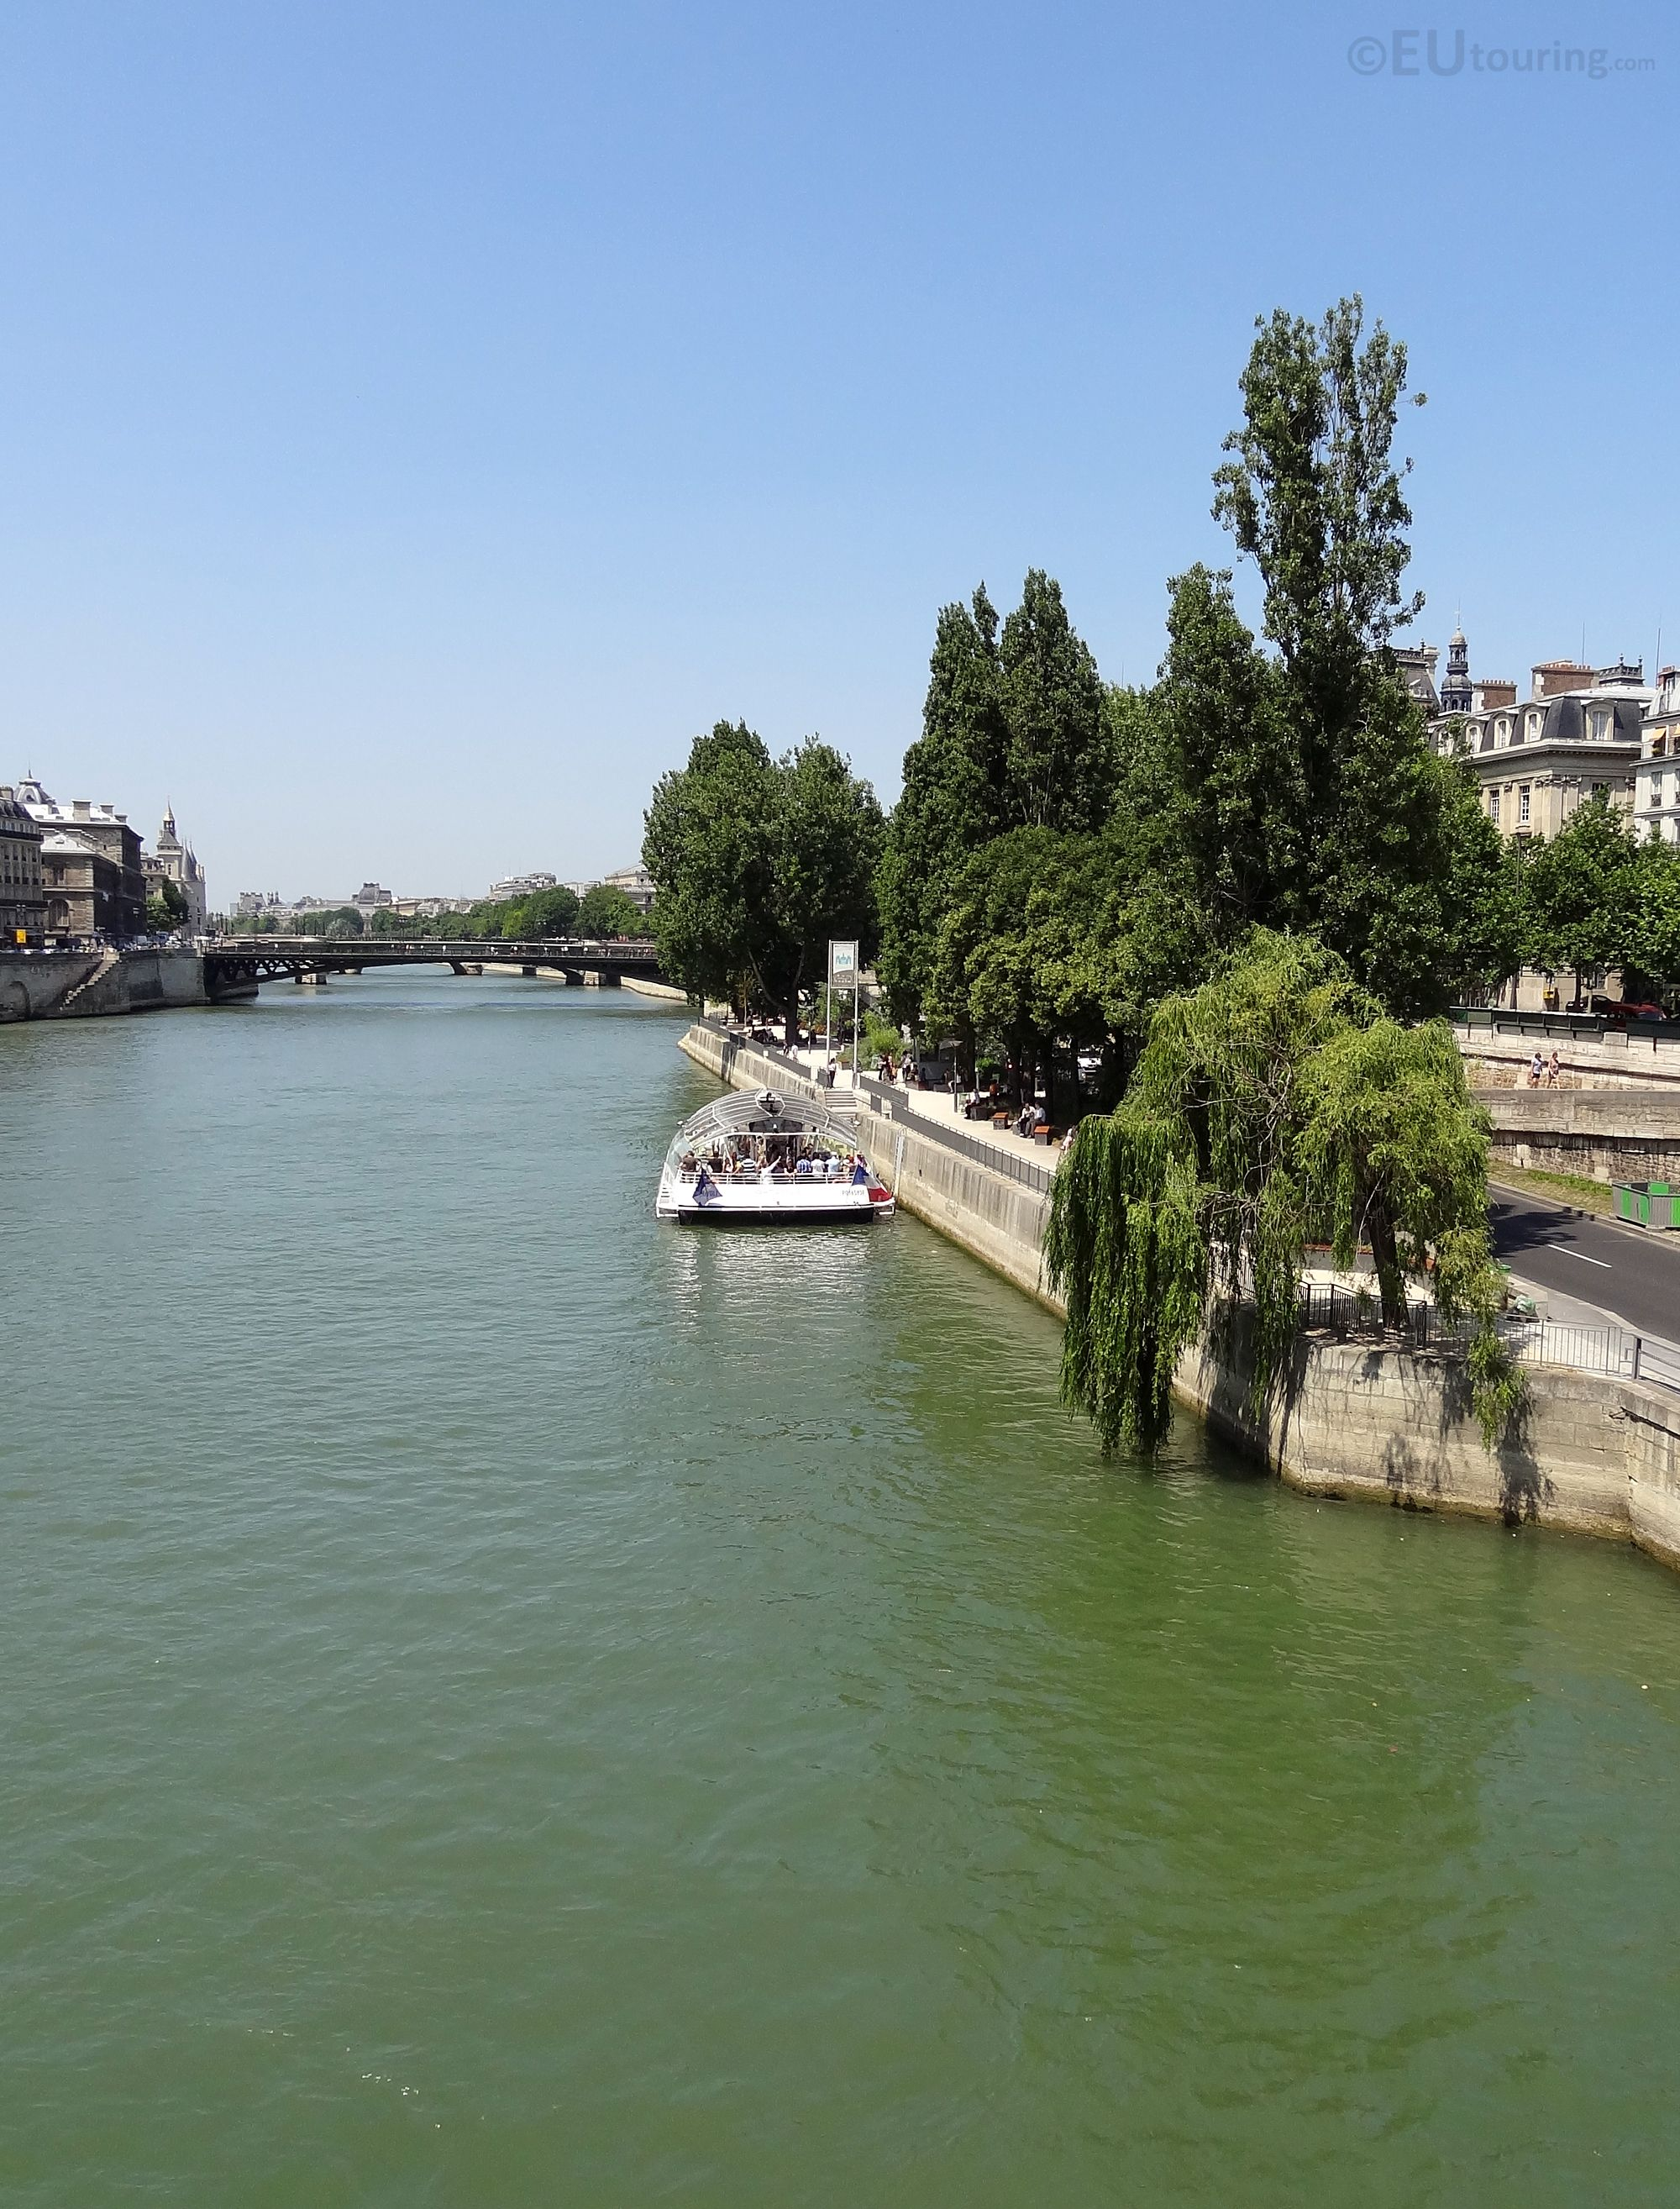 This photo shows just how peaceful and near-empty the River Seine can be at times, a lone tour boat going along the side of the tree lined river in Paris.  More information and details at www.eutouring.com